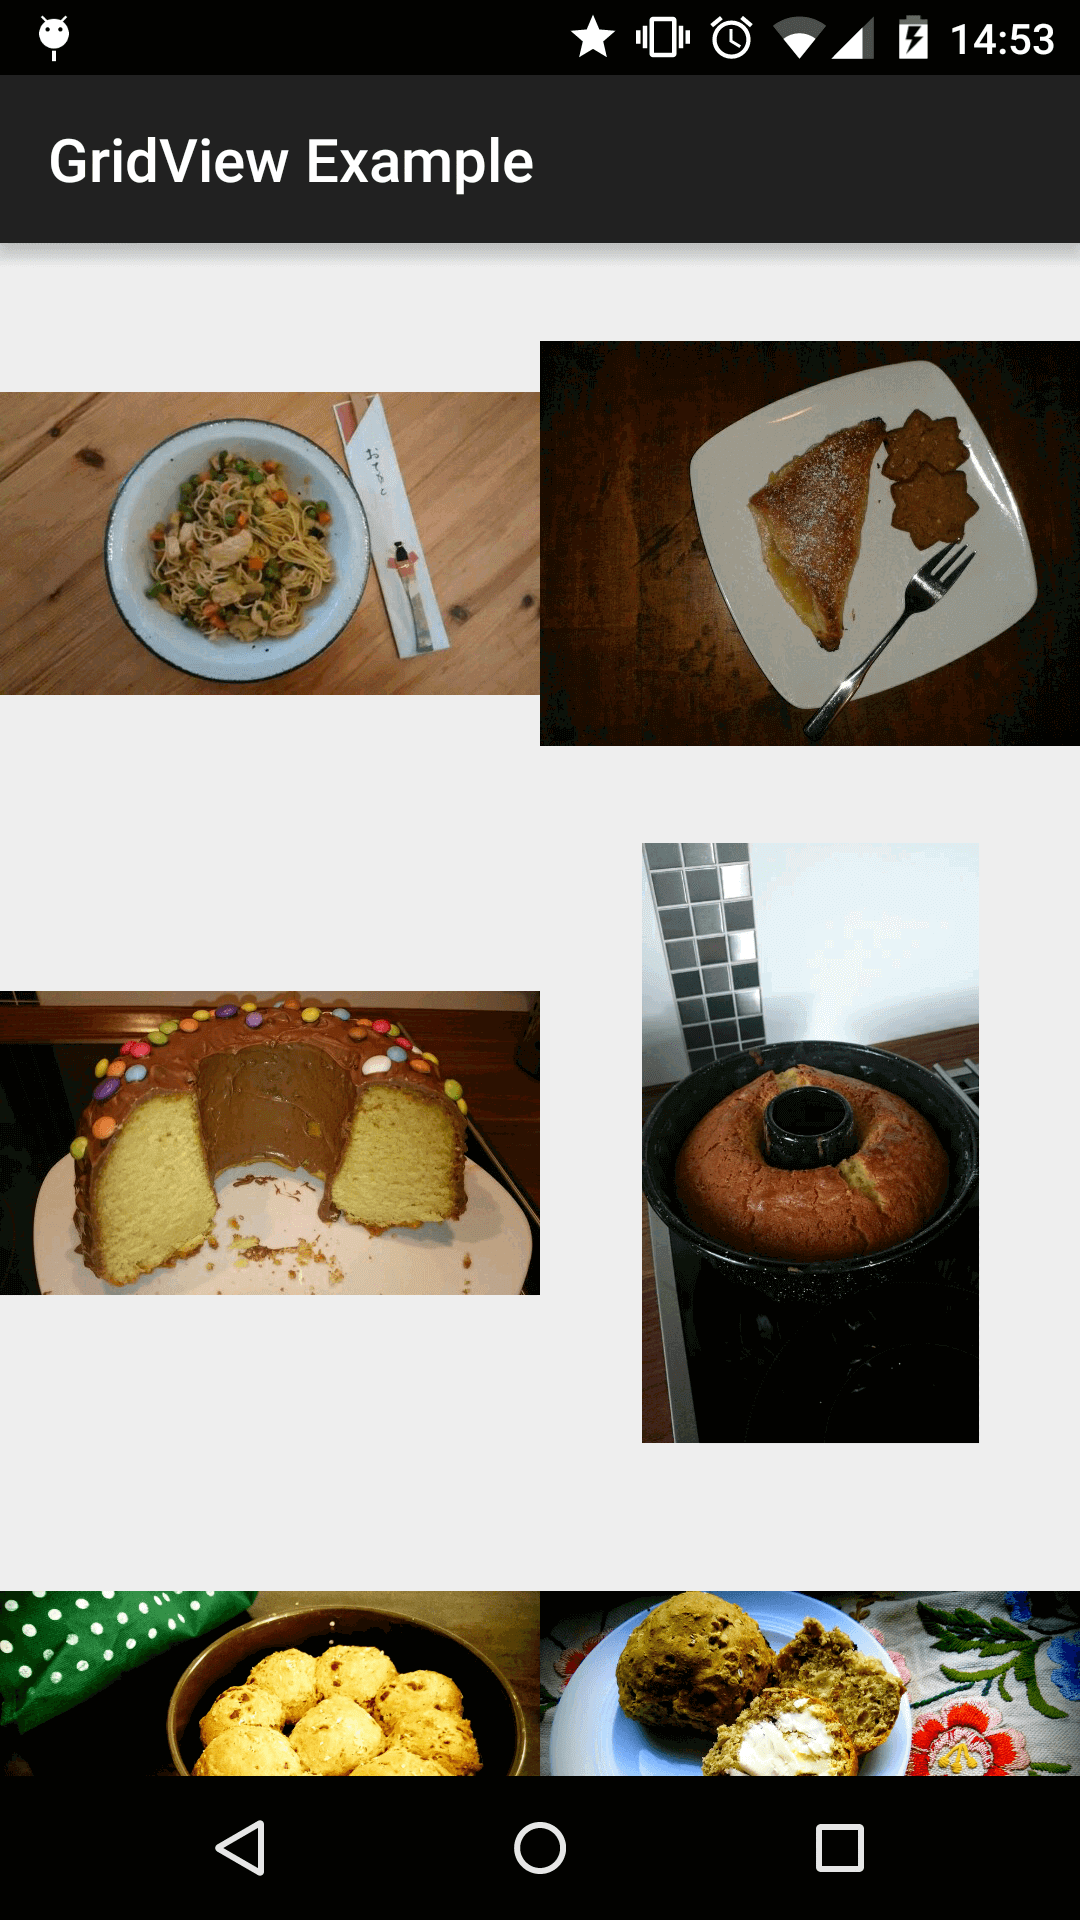 GridView with eatfoody Images